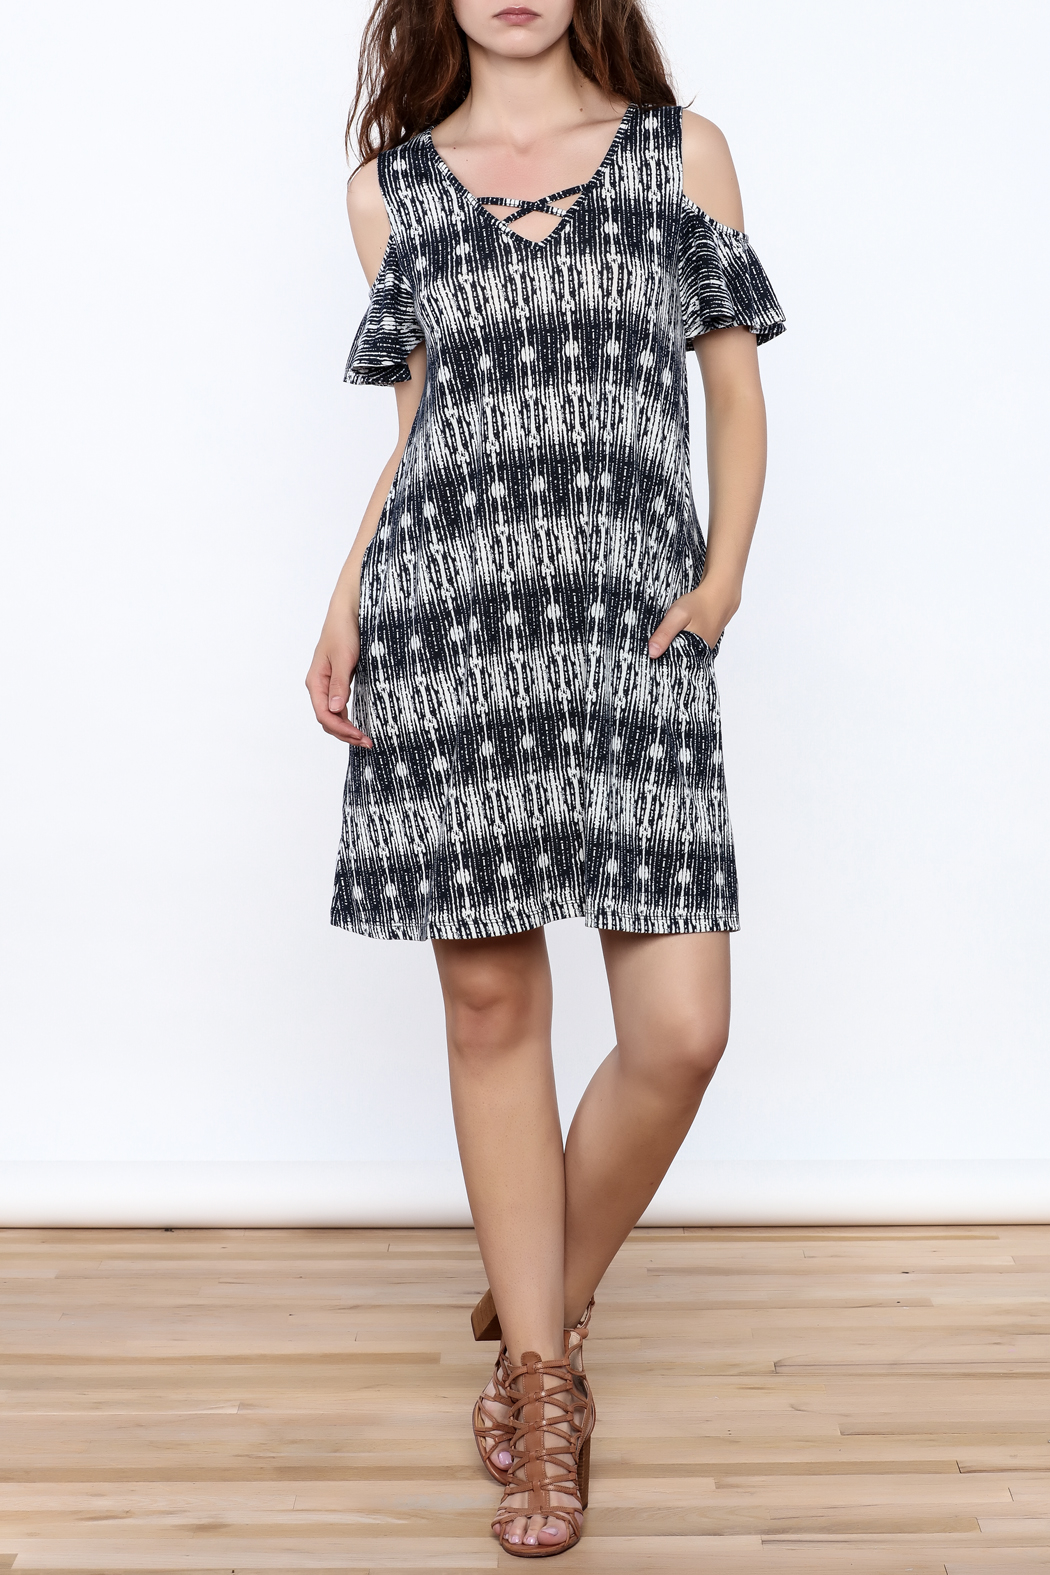 y&i clothing boutique Black Printed Oversized Dress - Front Full Image